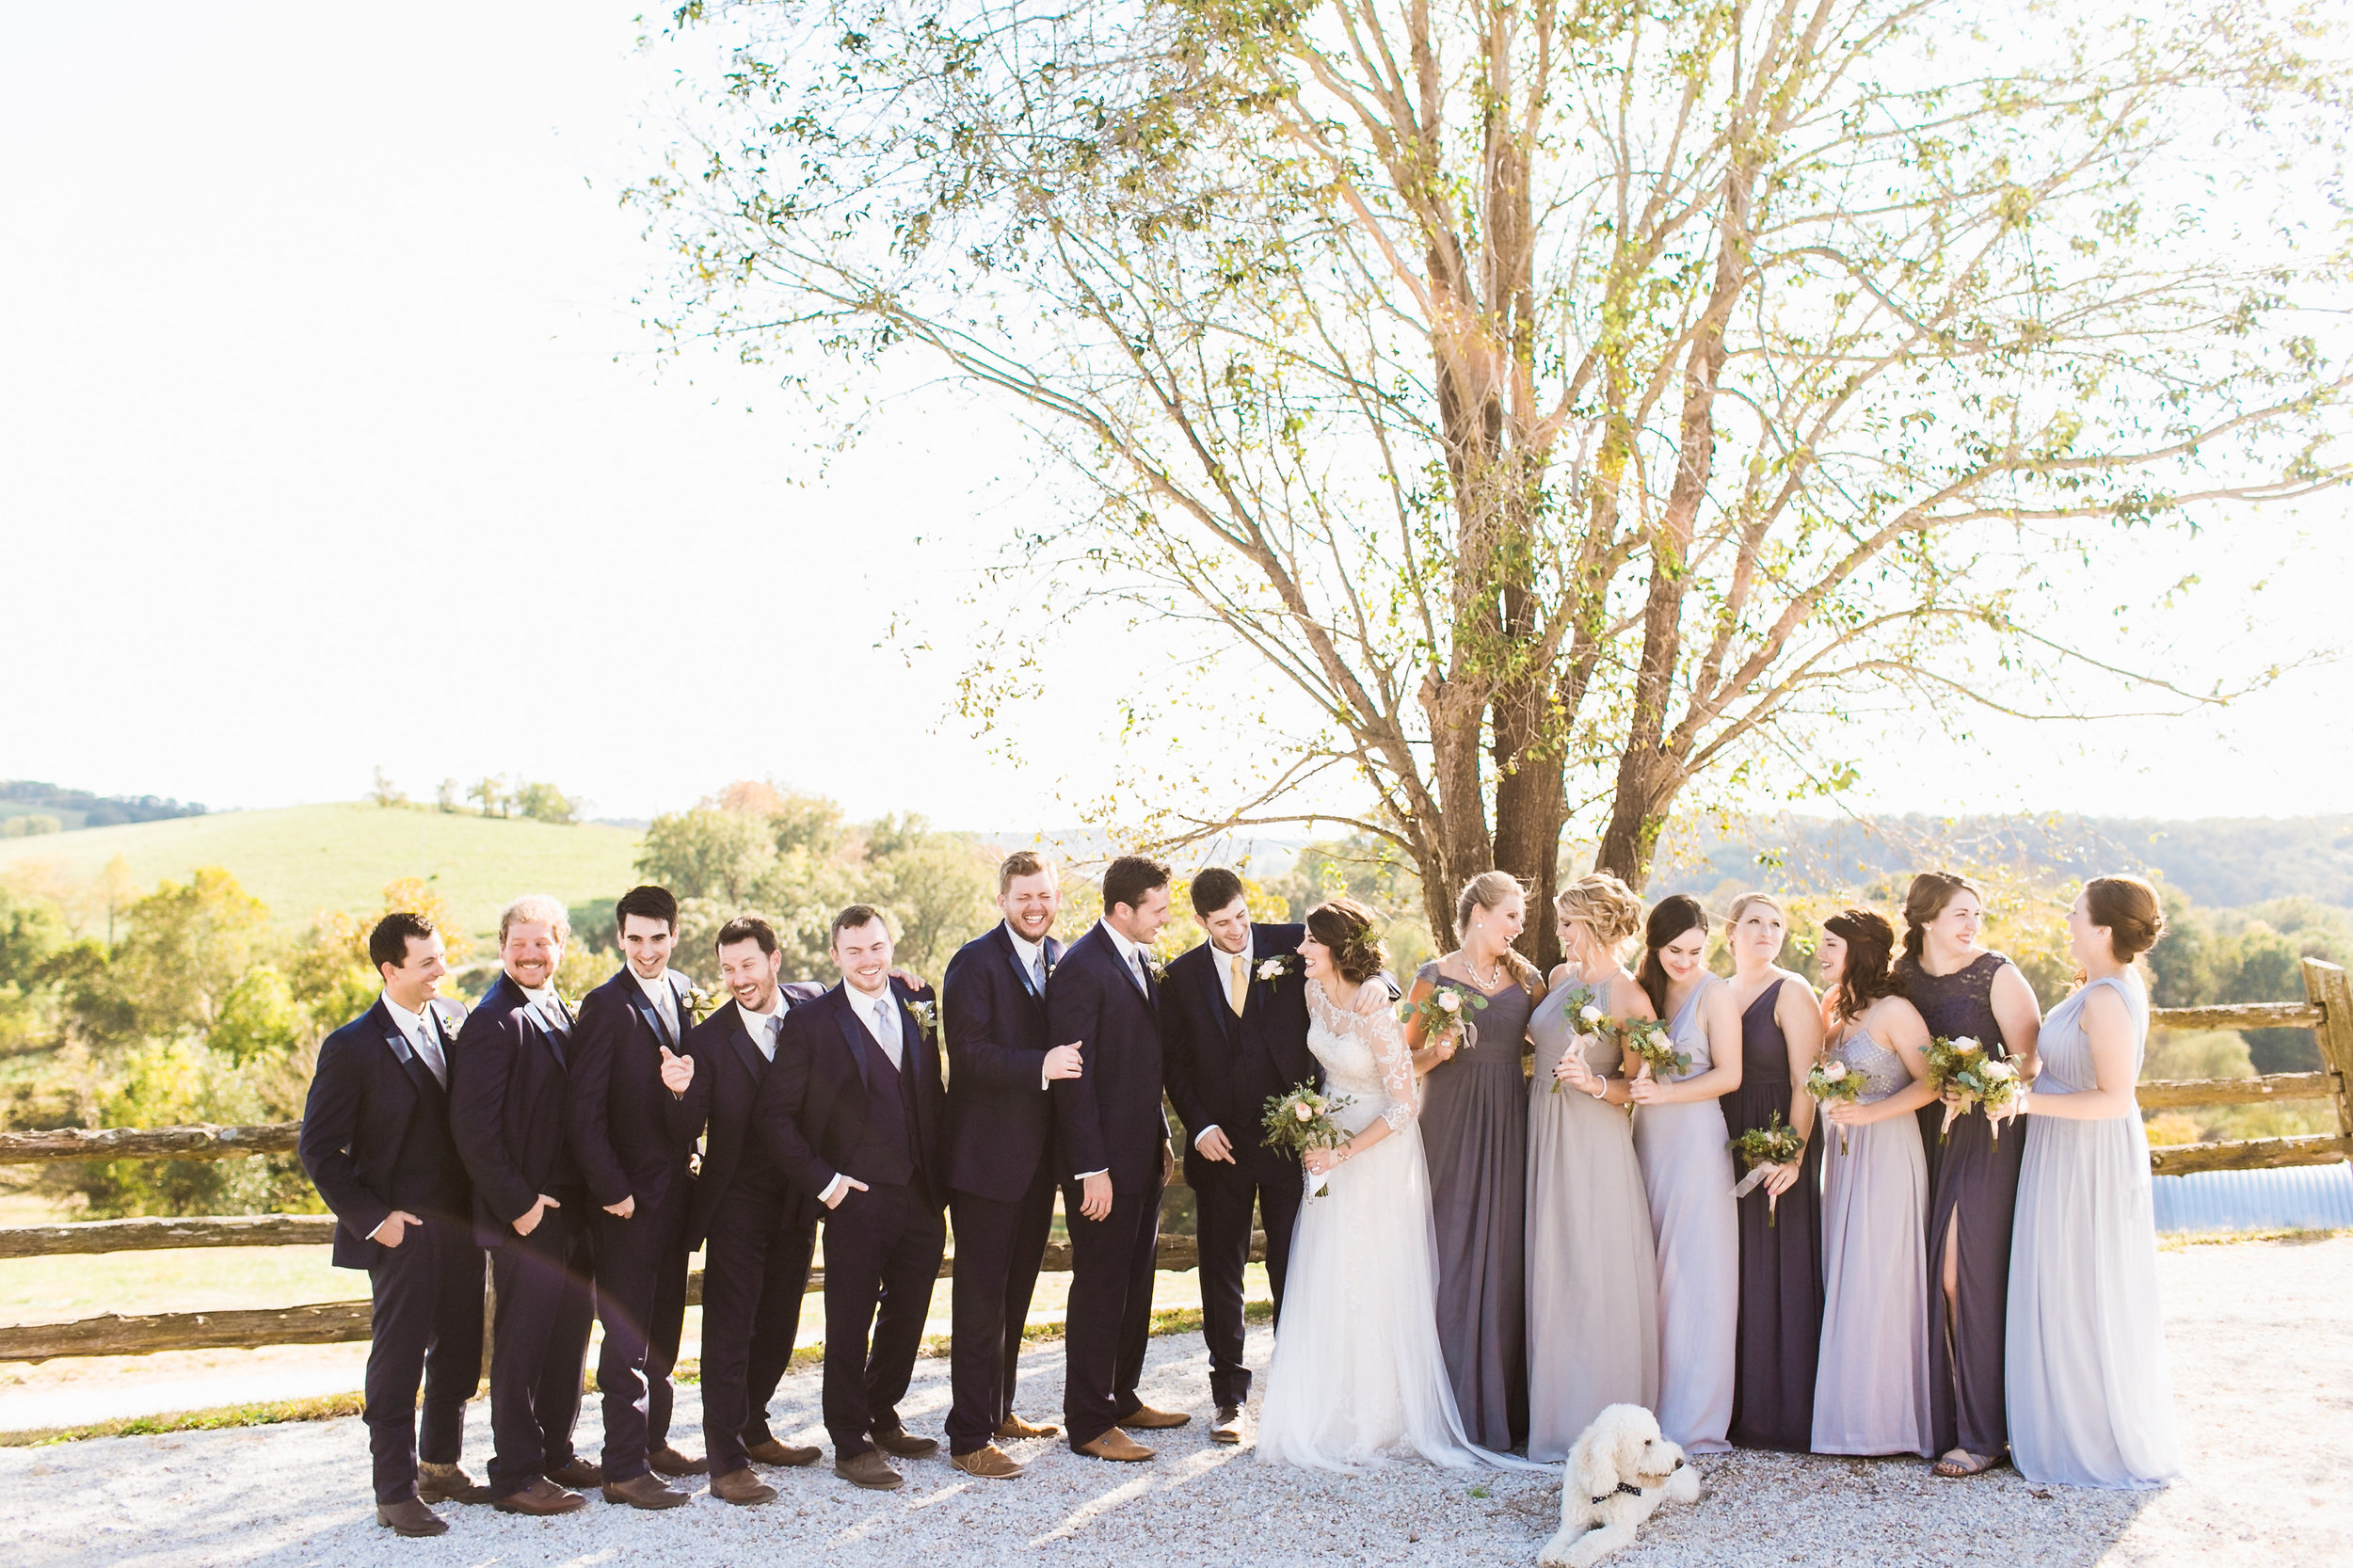 MissouriRusticWedding_StLouisWeddingPhotographer_AliciaDan_CatherineRhodesPhotography-2033-Edit.jpg